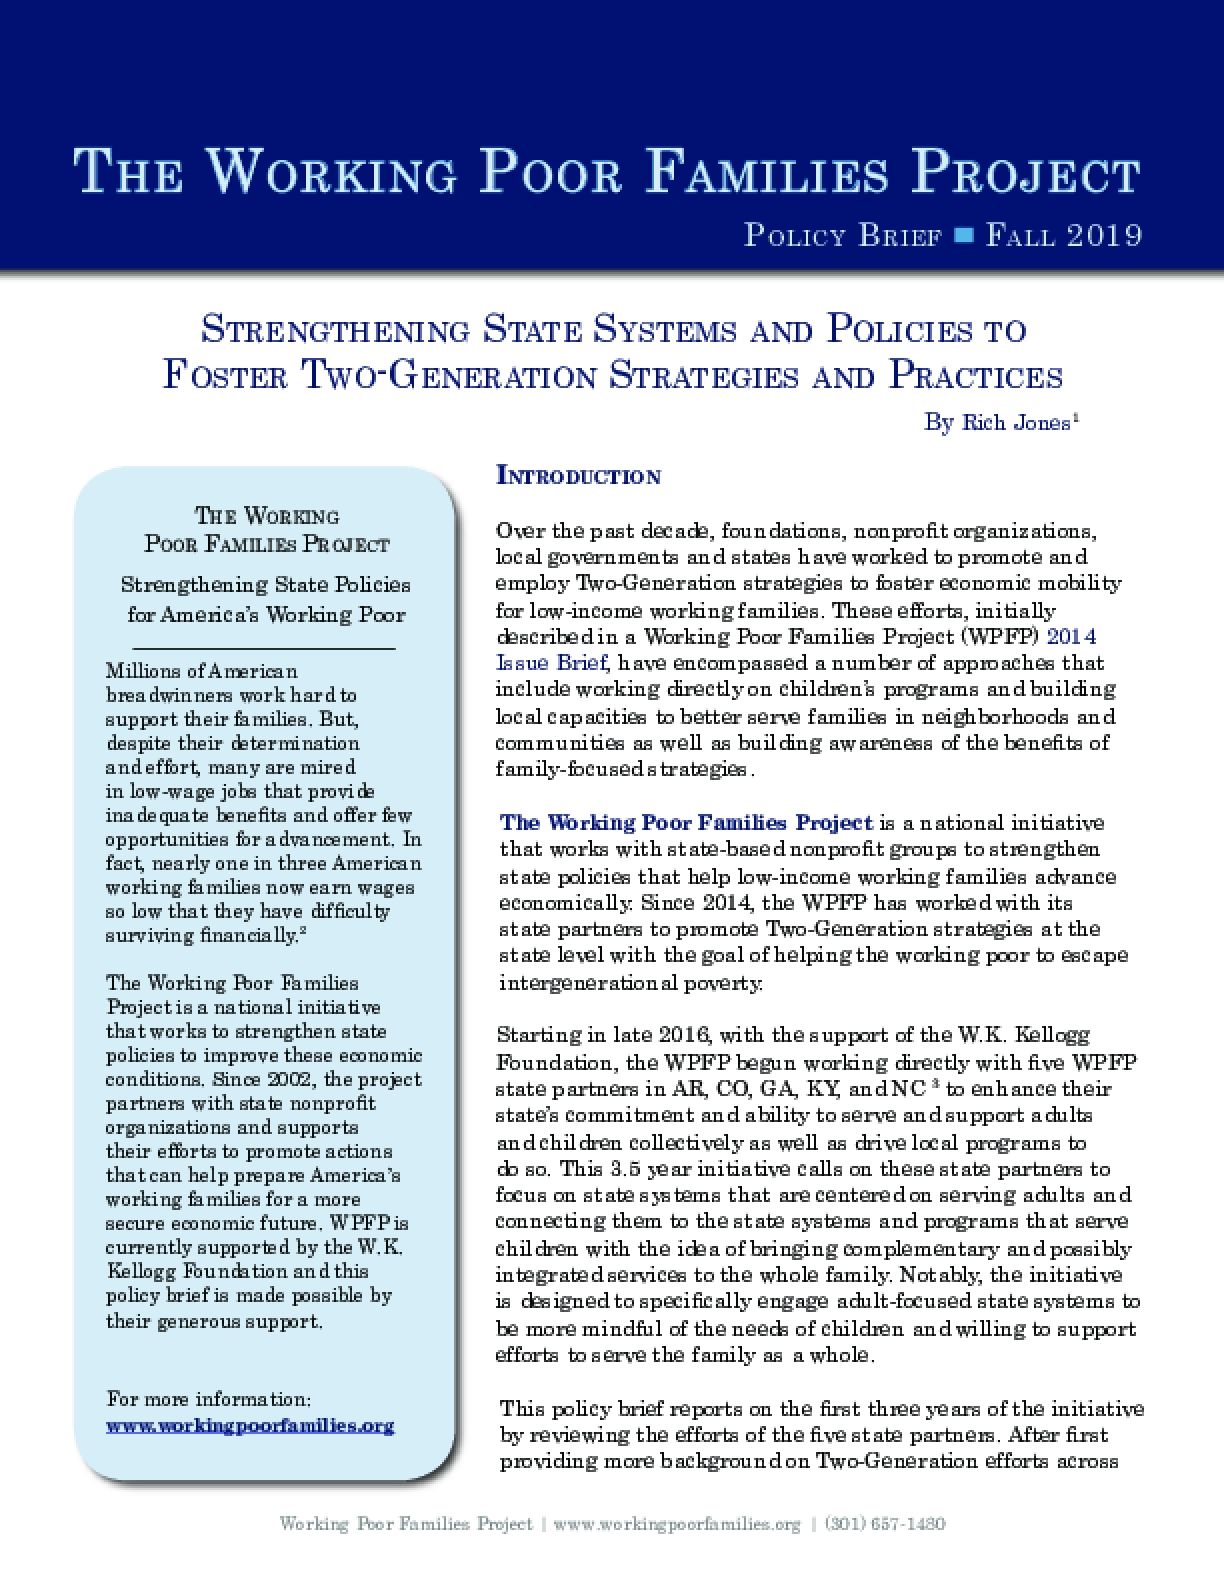 Strengthening State Systems and Policies to Foster Two-Generation Strategies and Practices